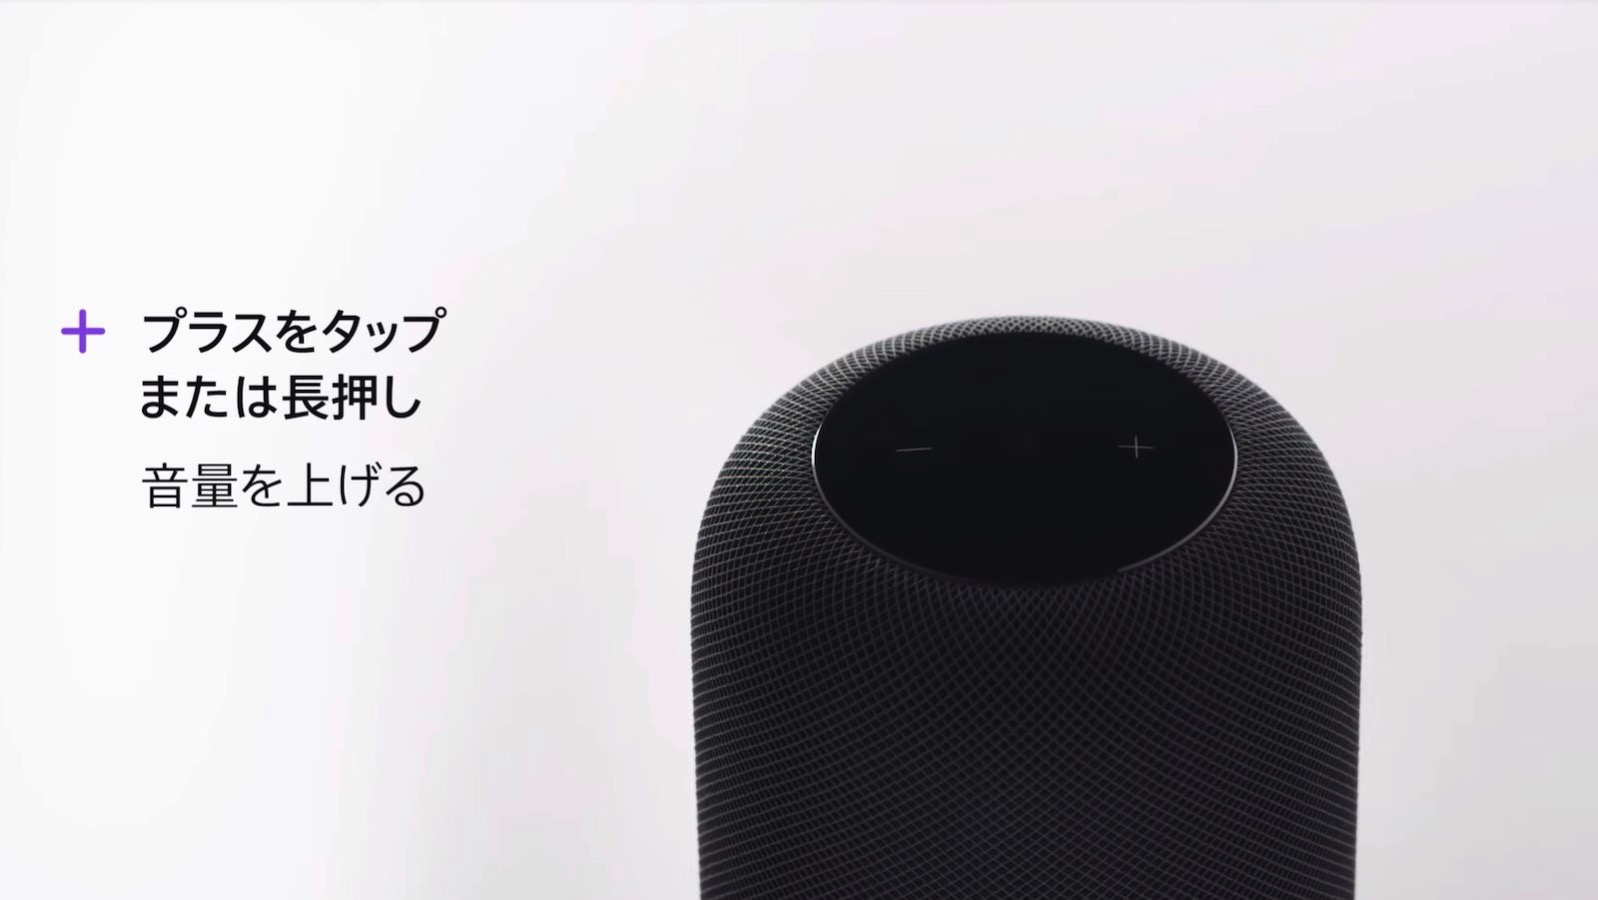 How To Use HomePod 4